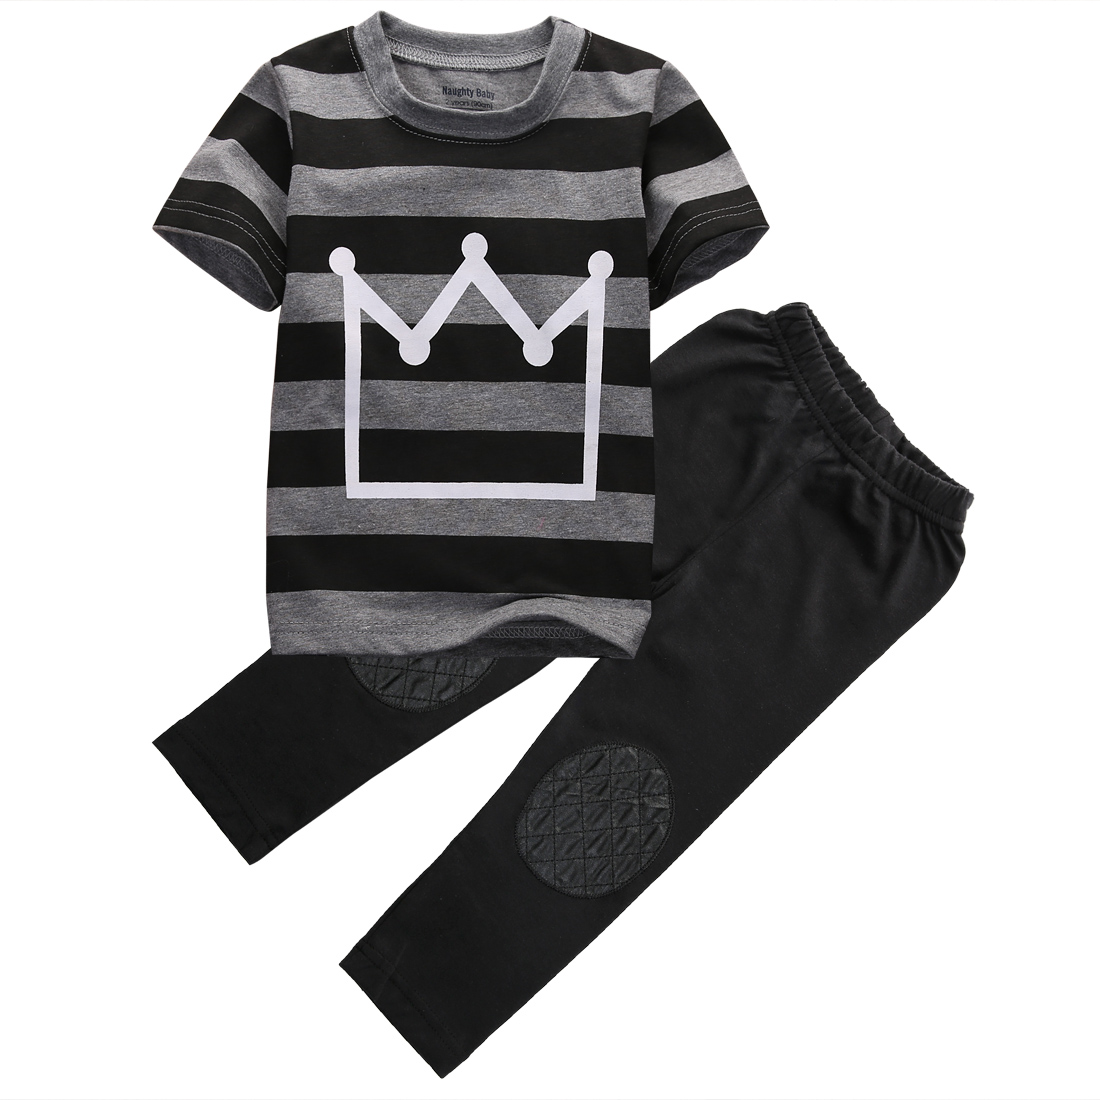 toddler summer suit !! 2016 wholesale newborn Infant kids baby boy striped clothes short sleeve tops+long pants outfits set 2-8T baby boy clothes set elephant print short sleeve tops striped long pants